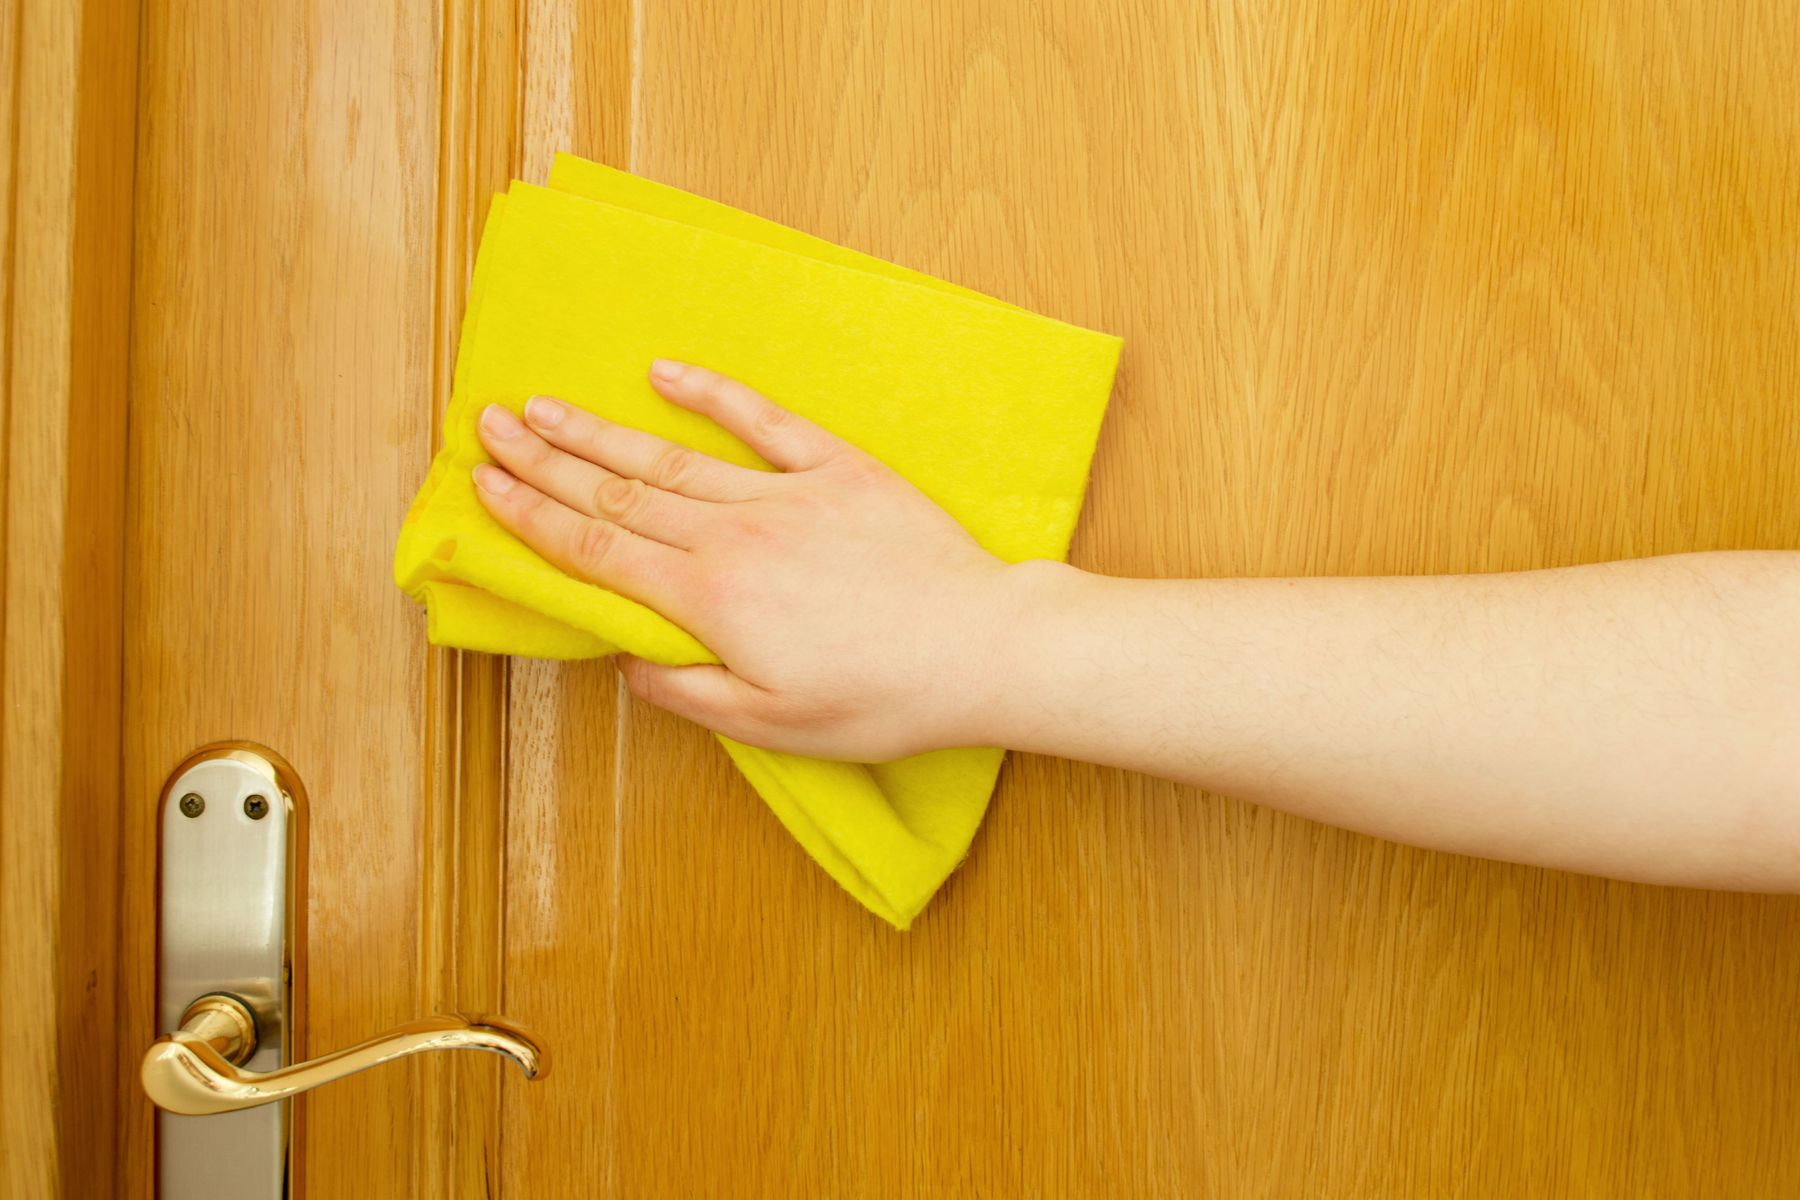 Steps to rid your doors of the fungus